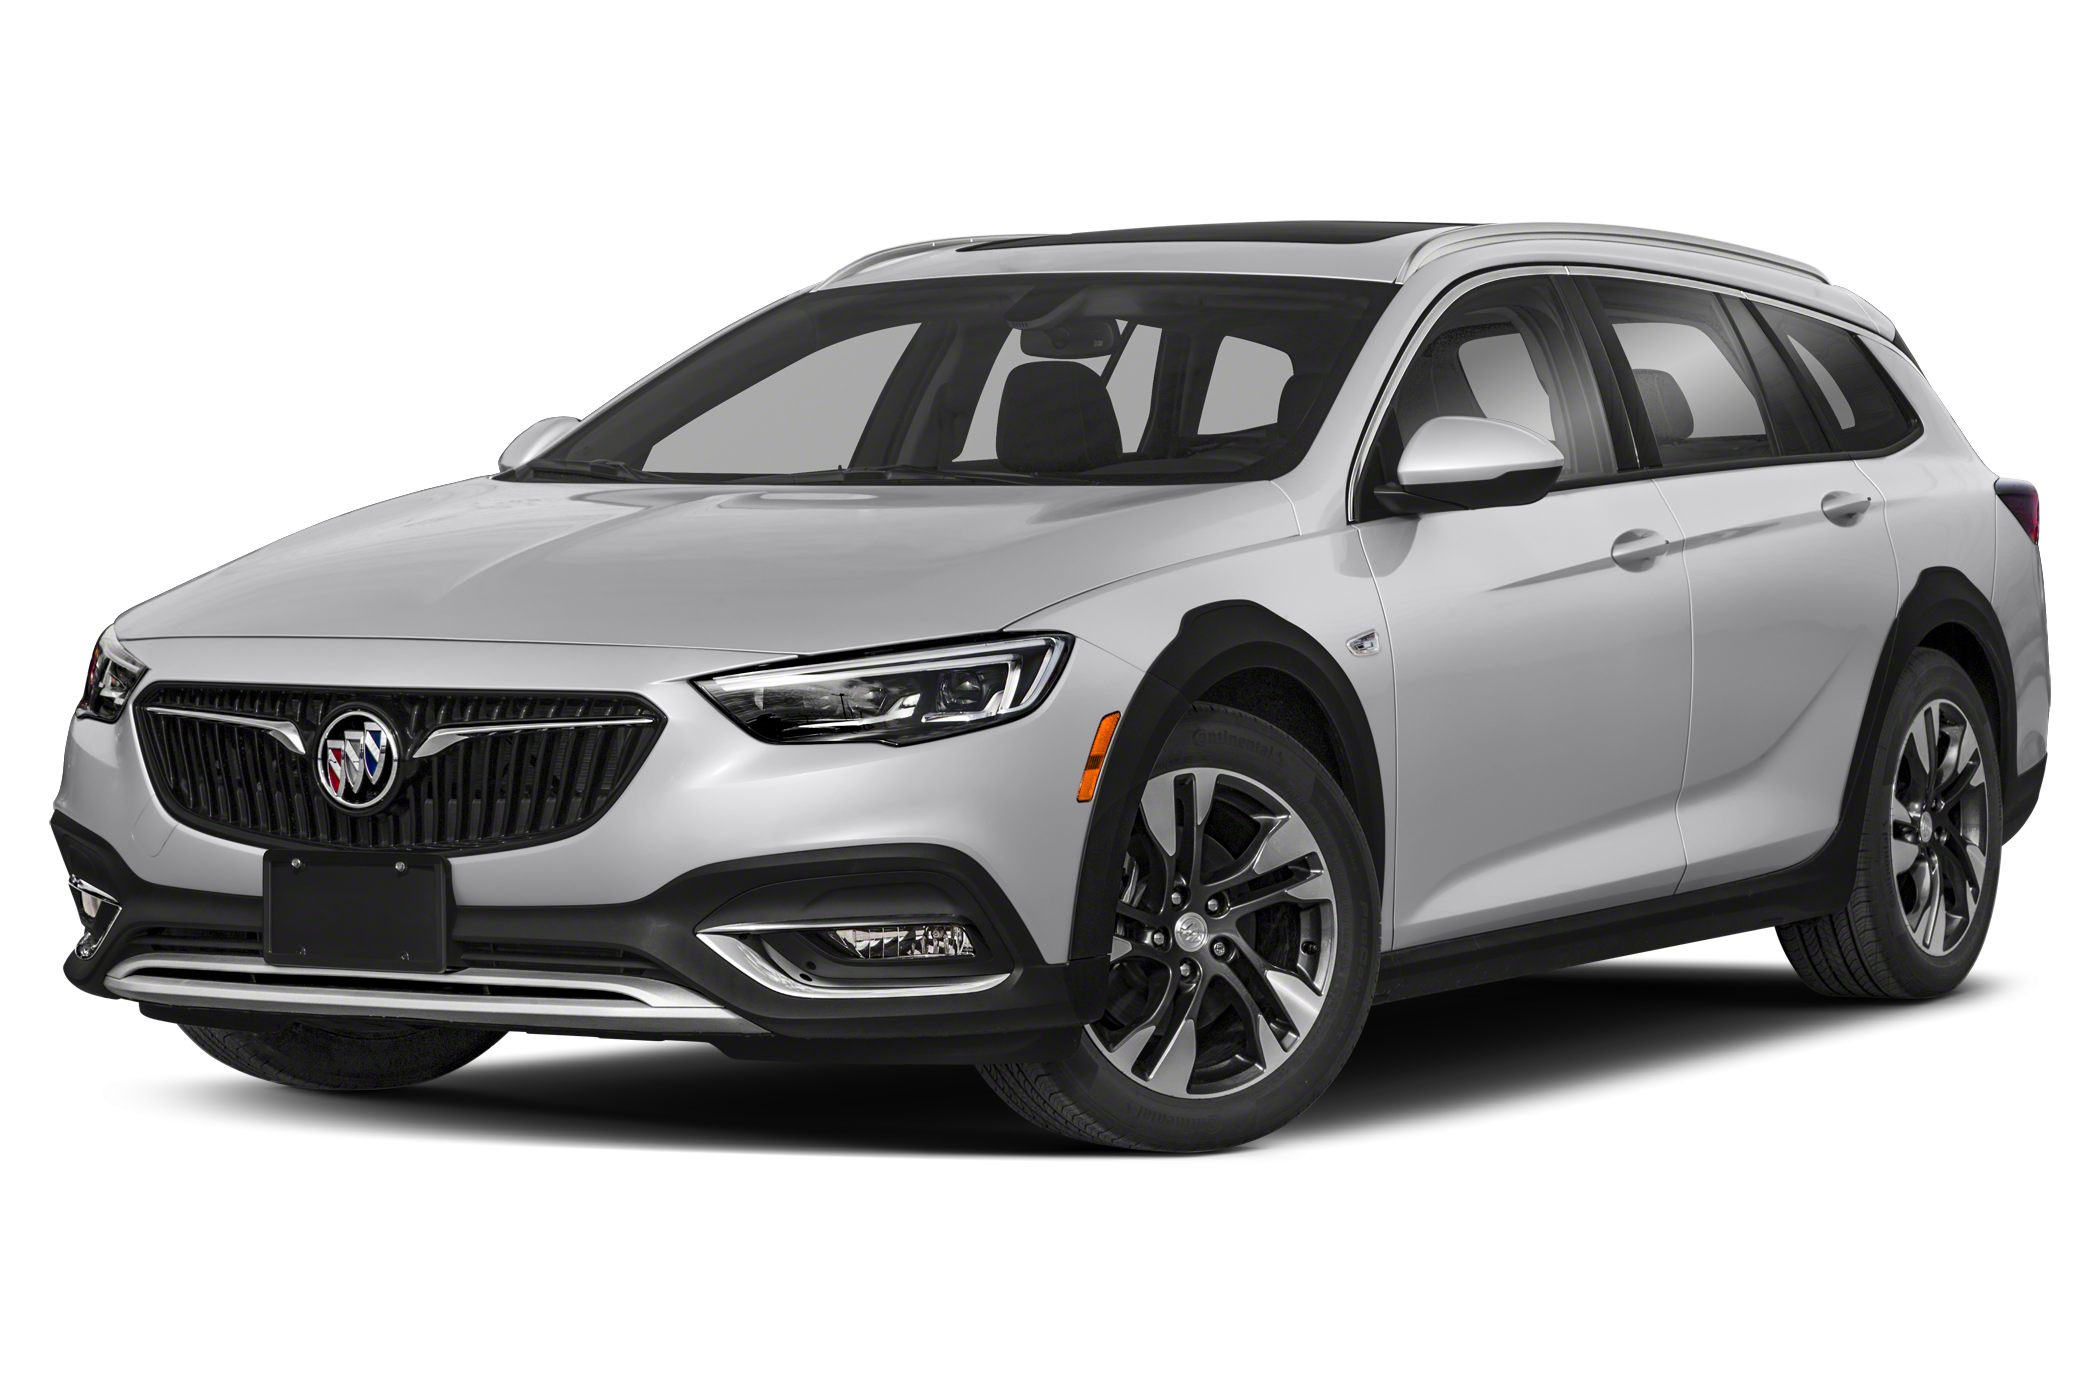 2018 Buick Regal TourX Essence For a top driving experience check out this 2018 Buick Regal TourX